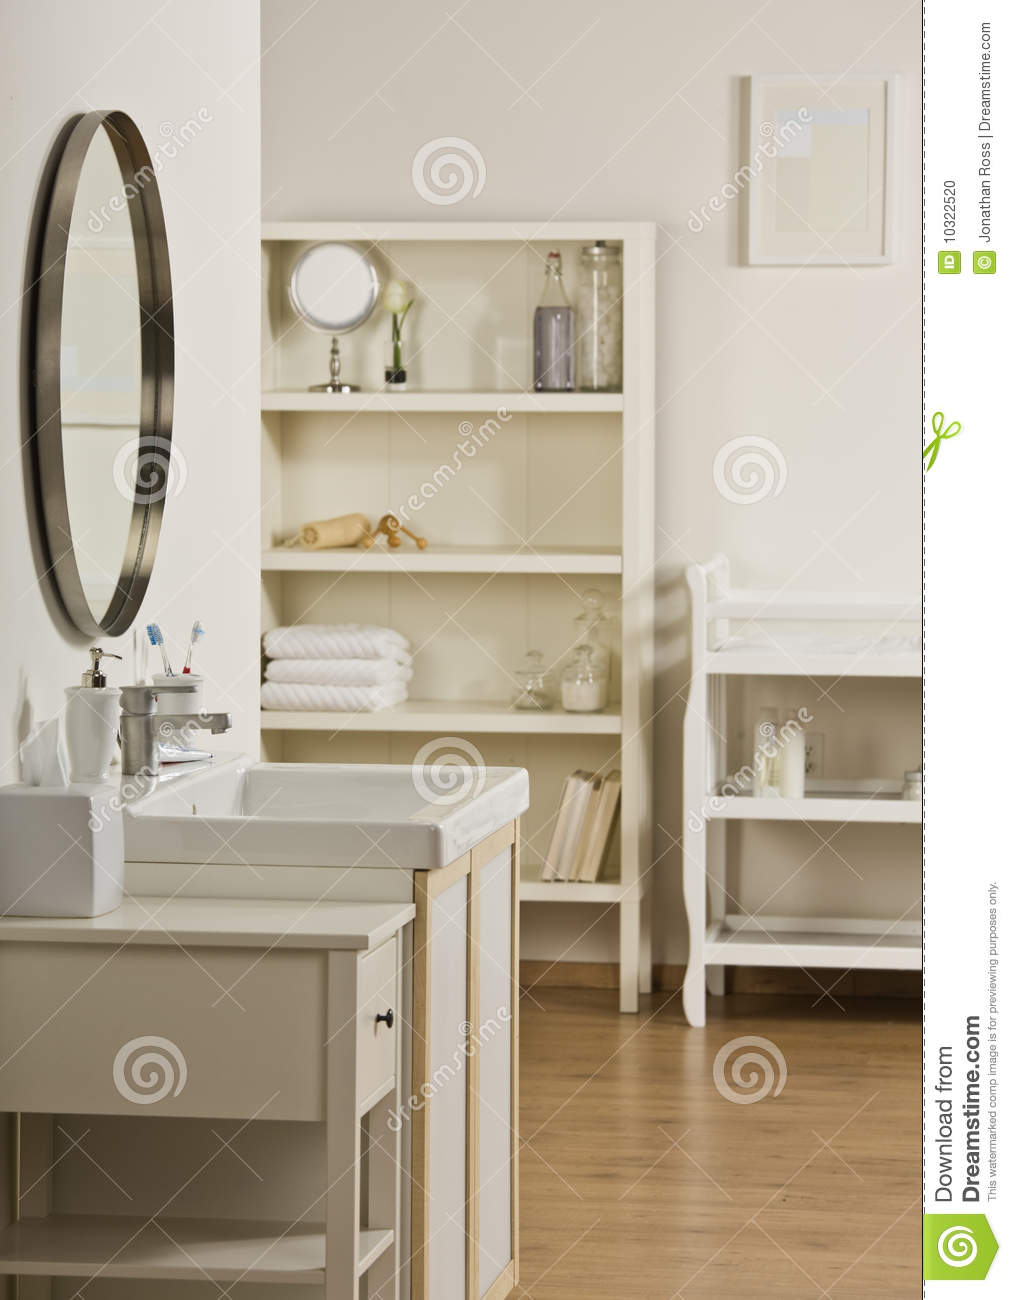 sink mirror shelving and cabinets all white vertical mr no pr no 3 798